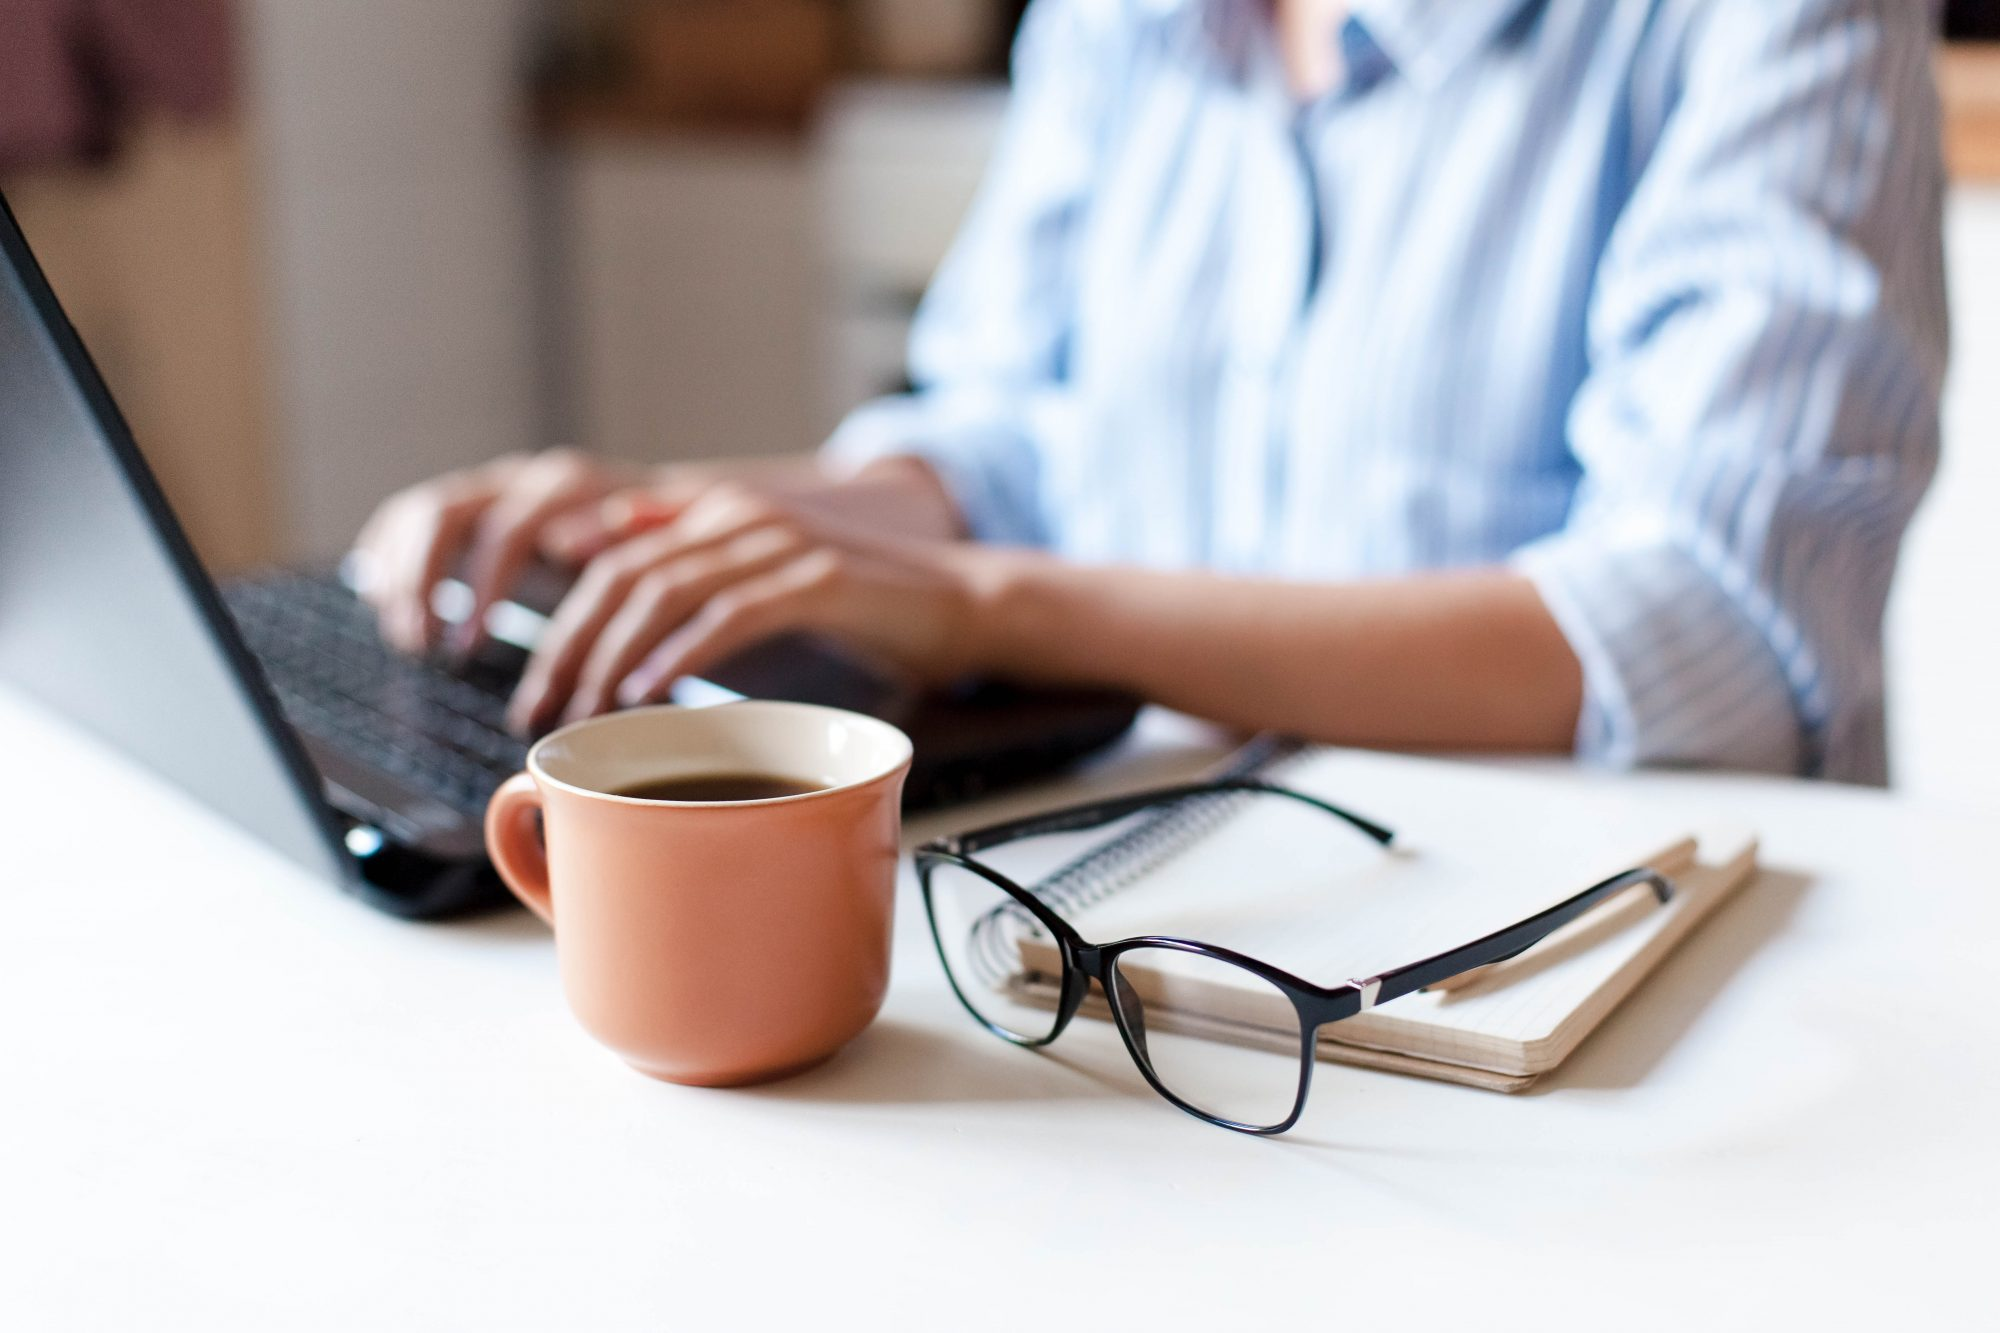 woman working on laptop with coffee cup